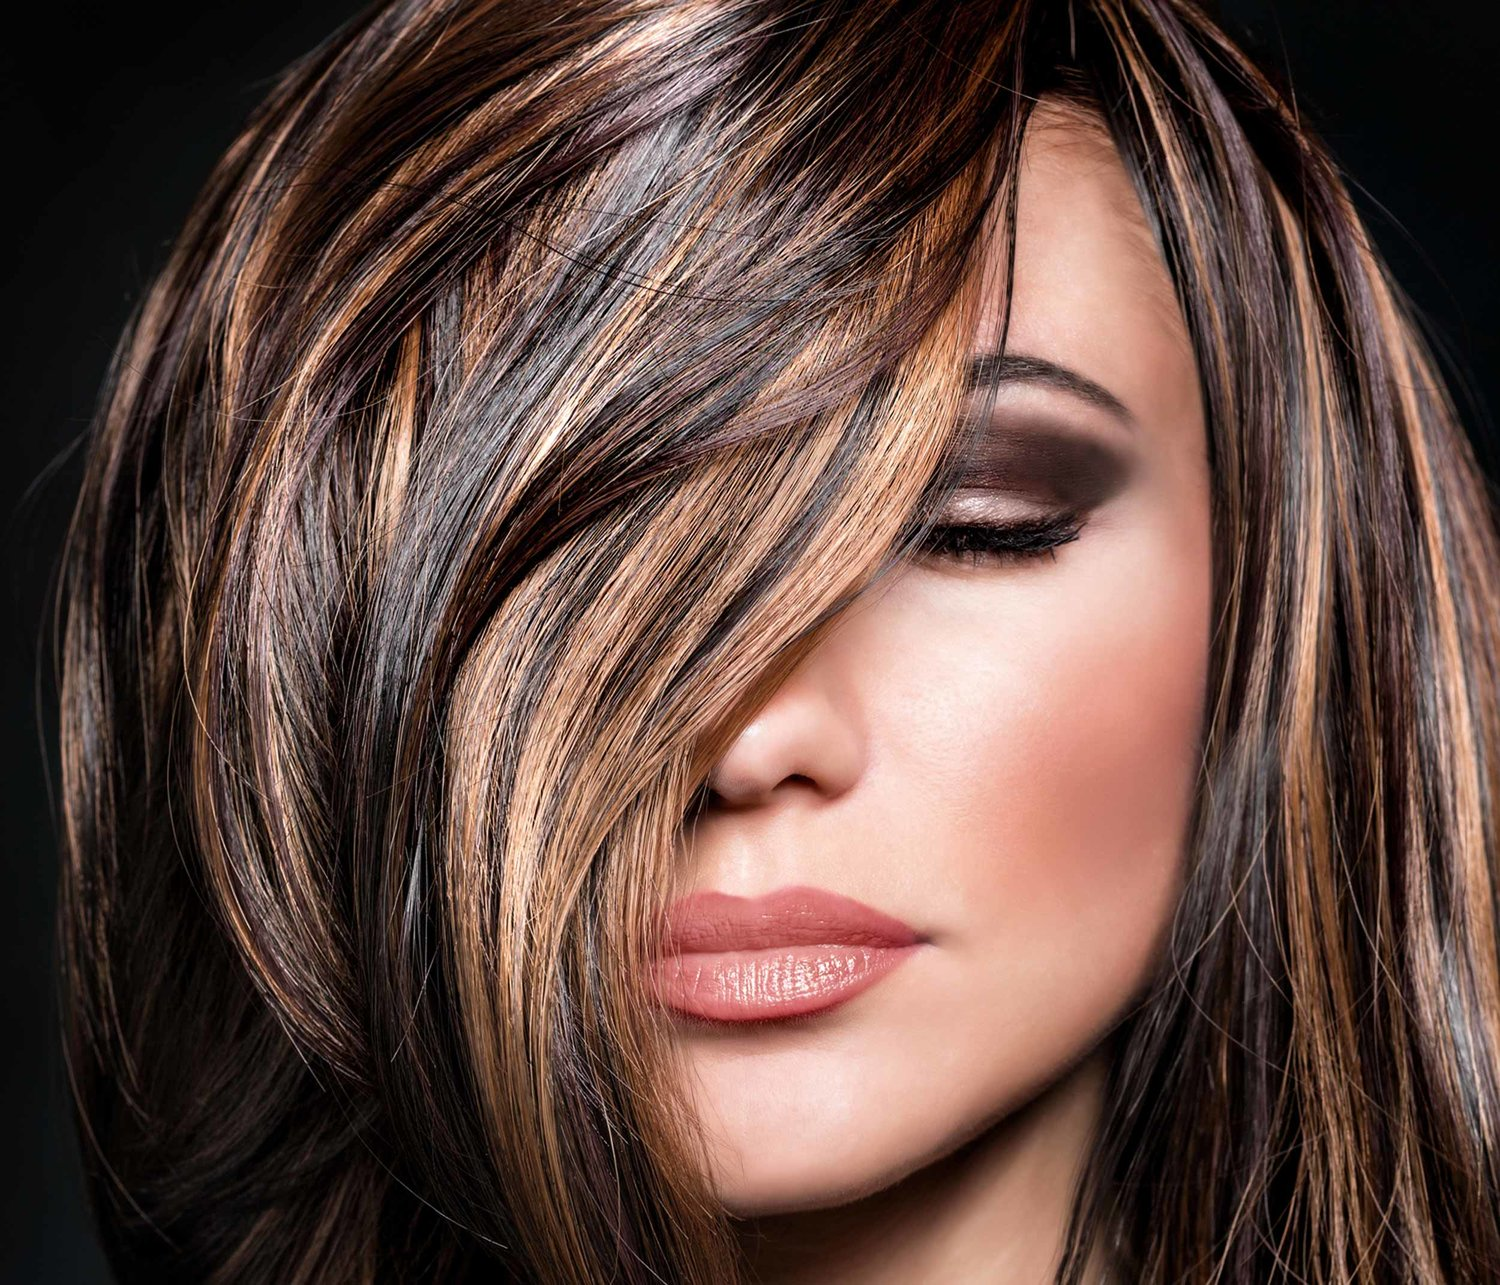 Hair Color Head Turners Hair Salon Hairstyling Makeup And